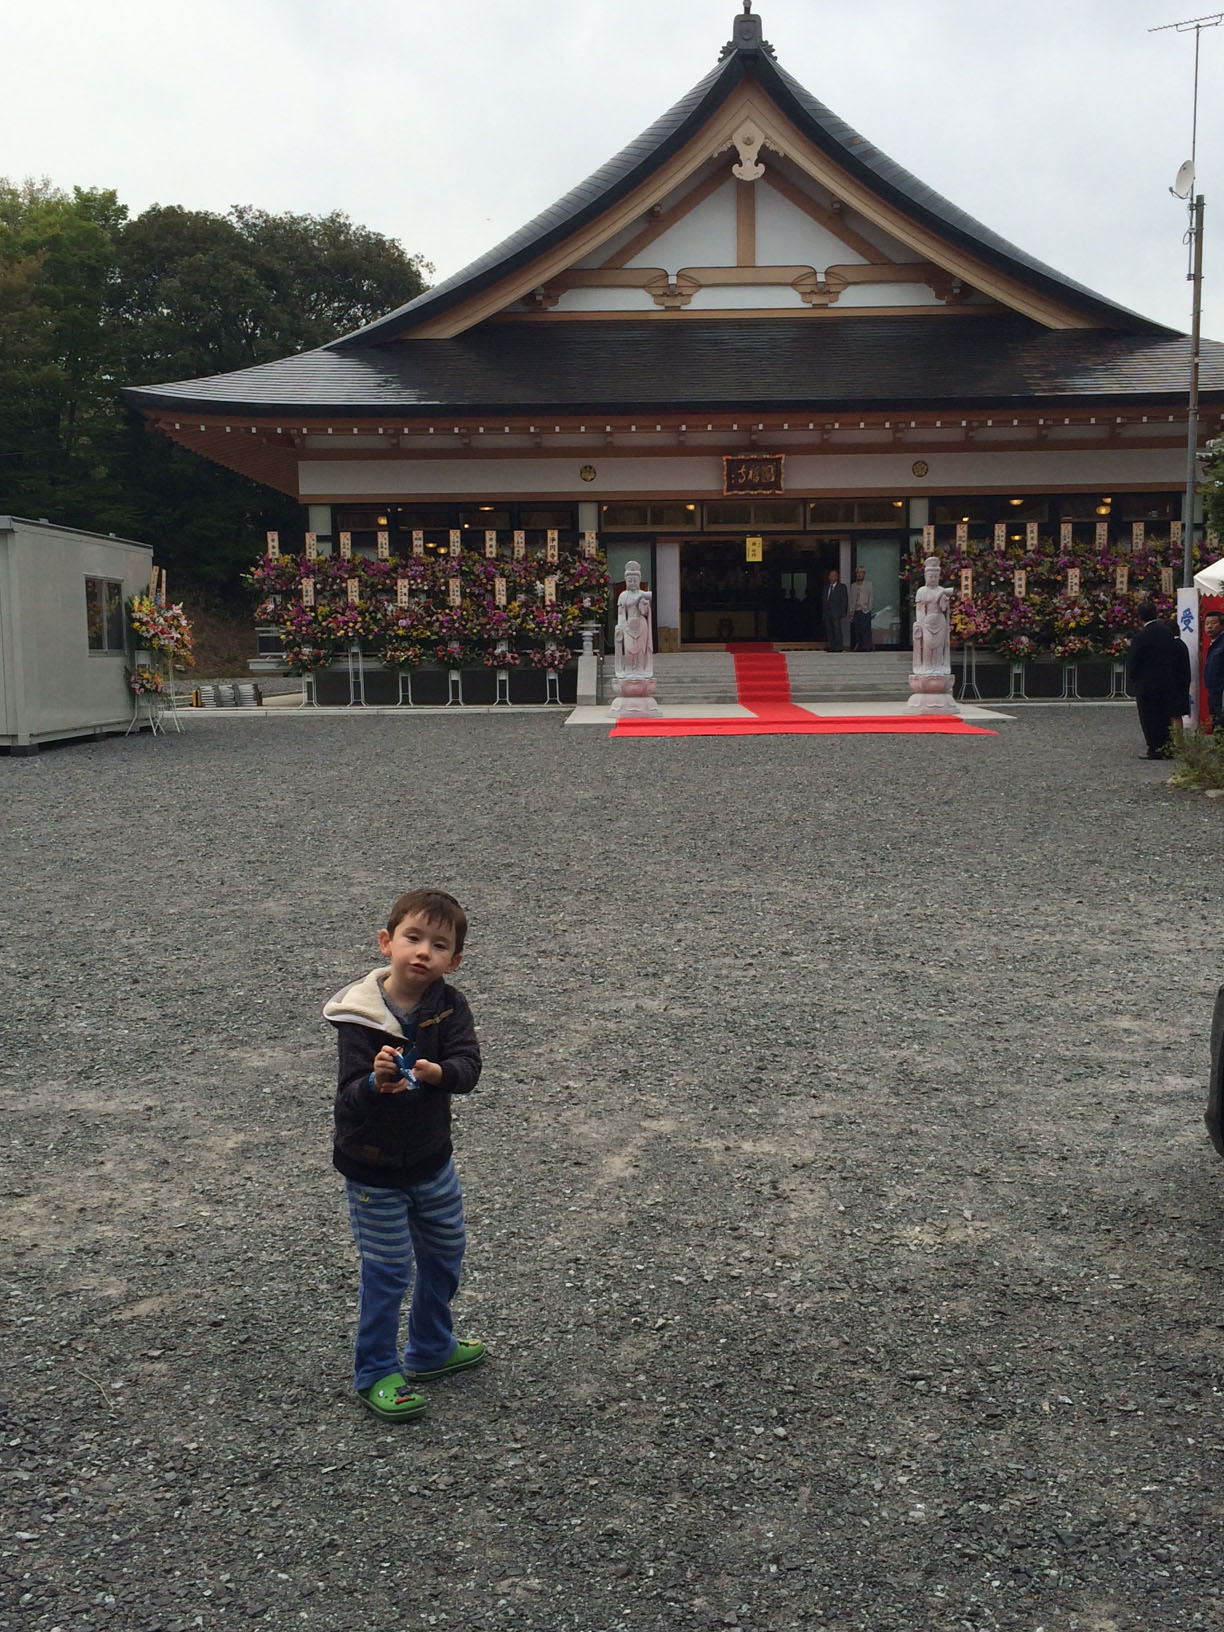 Tainted legacy: Ewan, the son of author Marie Mutsuki Mockett, stands outside Empukuji Temple in Iwaki, Fukushima Prefecture.